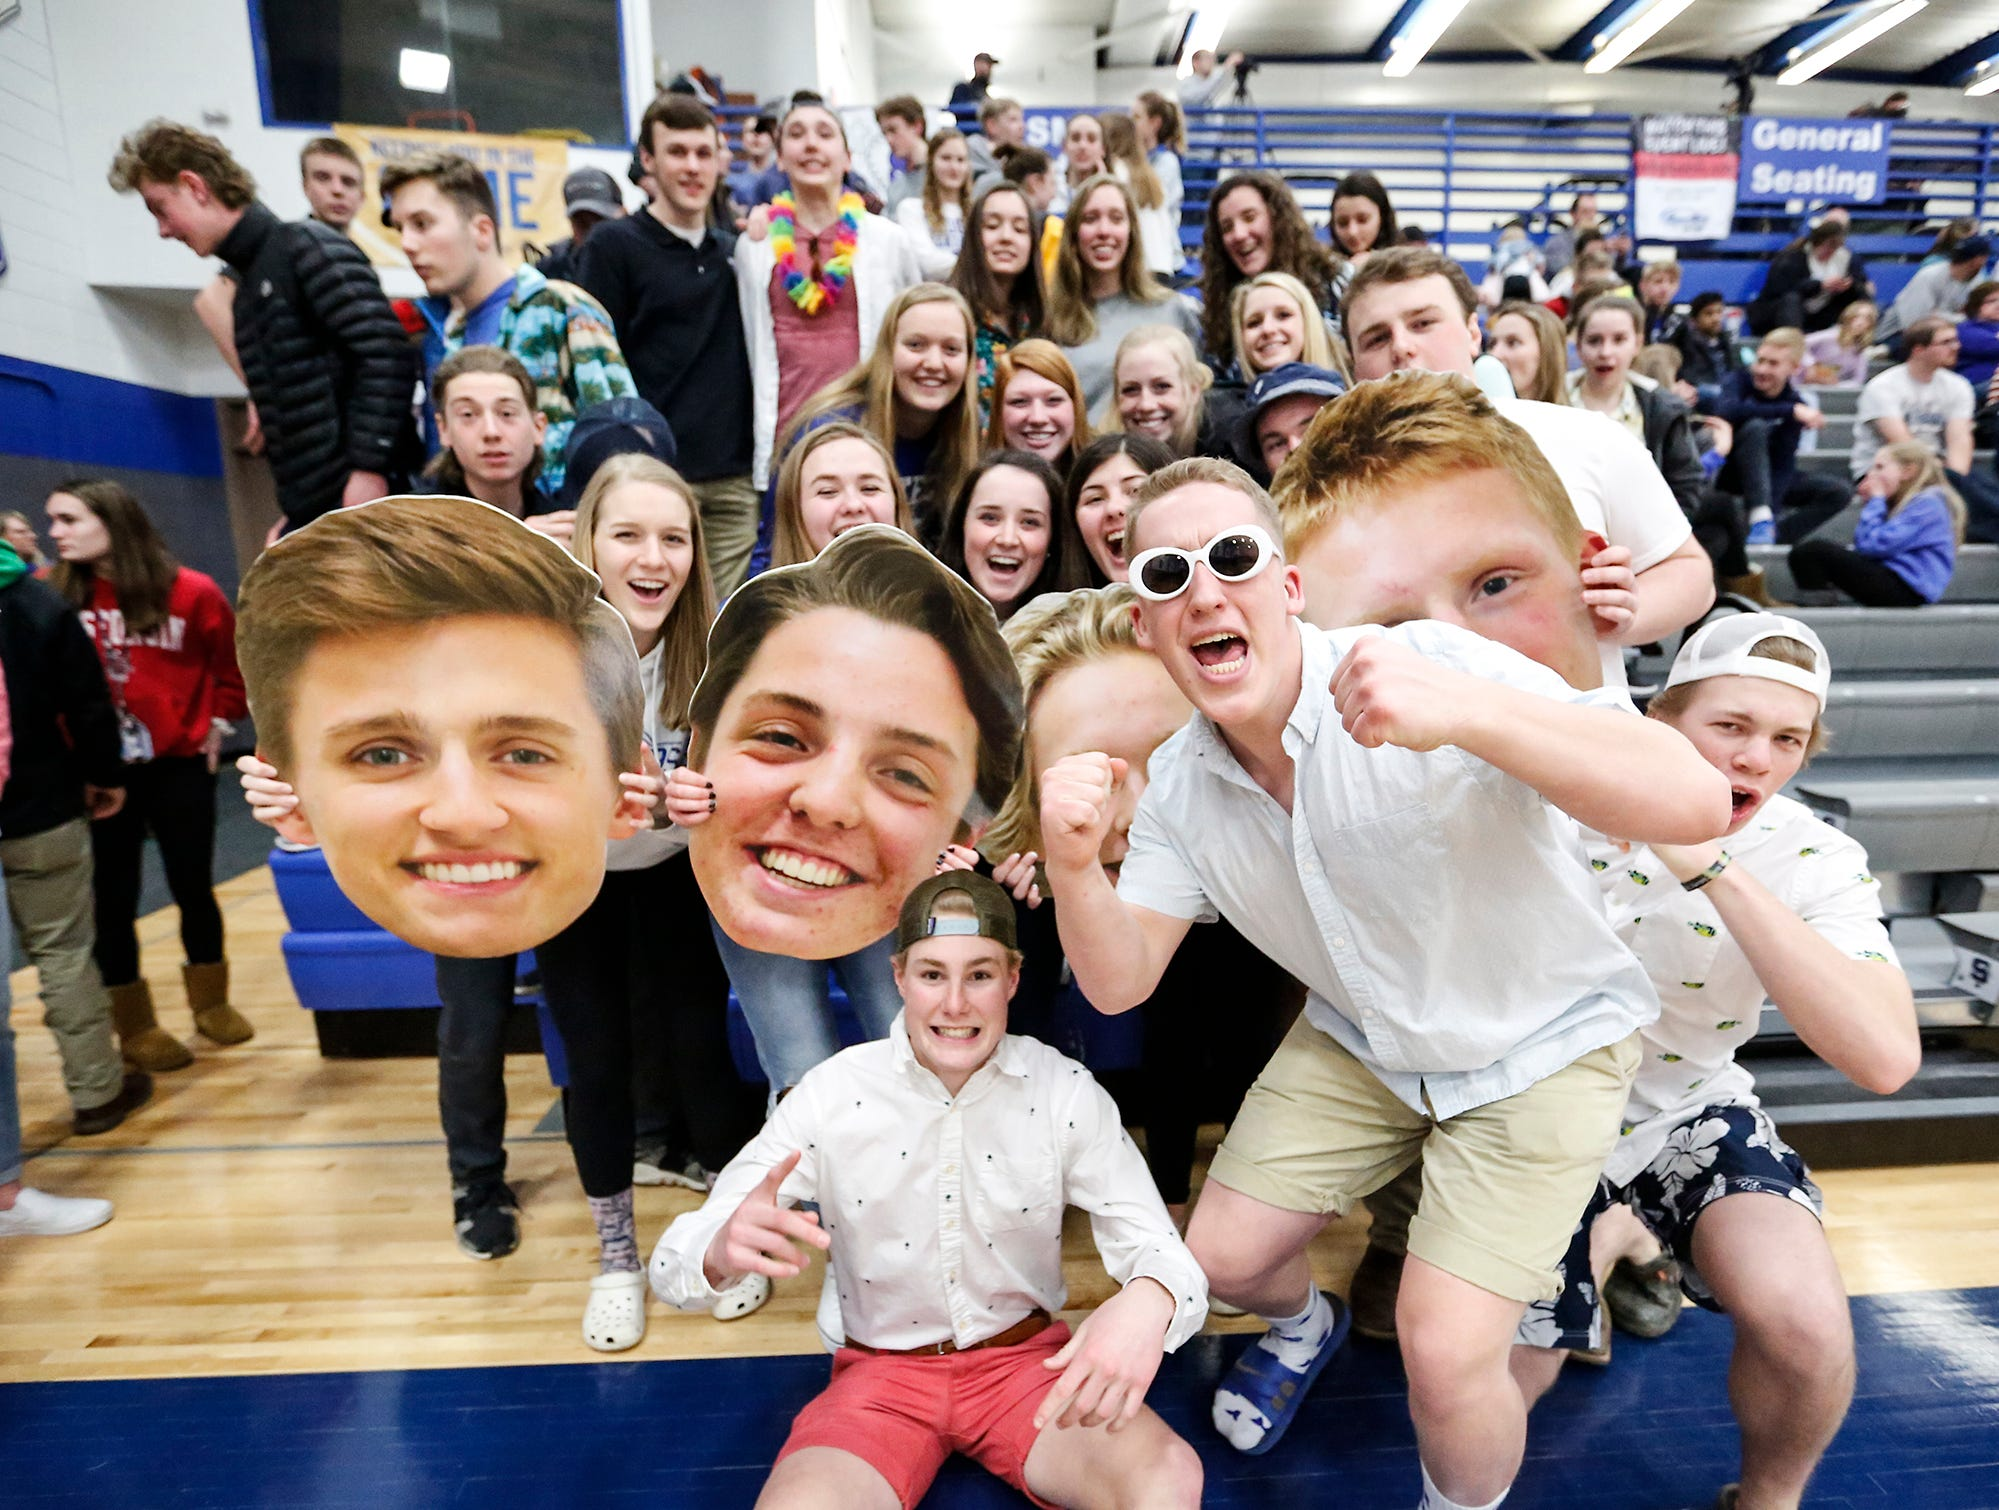 St Mary's Springs Academy boys basketball fans cheer during a game against Winnebago Lutheran Academy Thursday, February 21, 2019 in Fond du Lac, Wisconsin. Winnebago Lutheran Academy won the game 95-86. Doug Raflik/USA TODAY NETWORK-Wisconsin